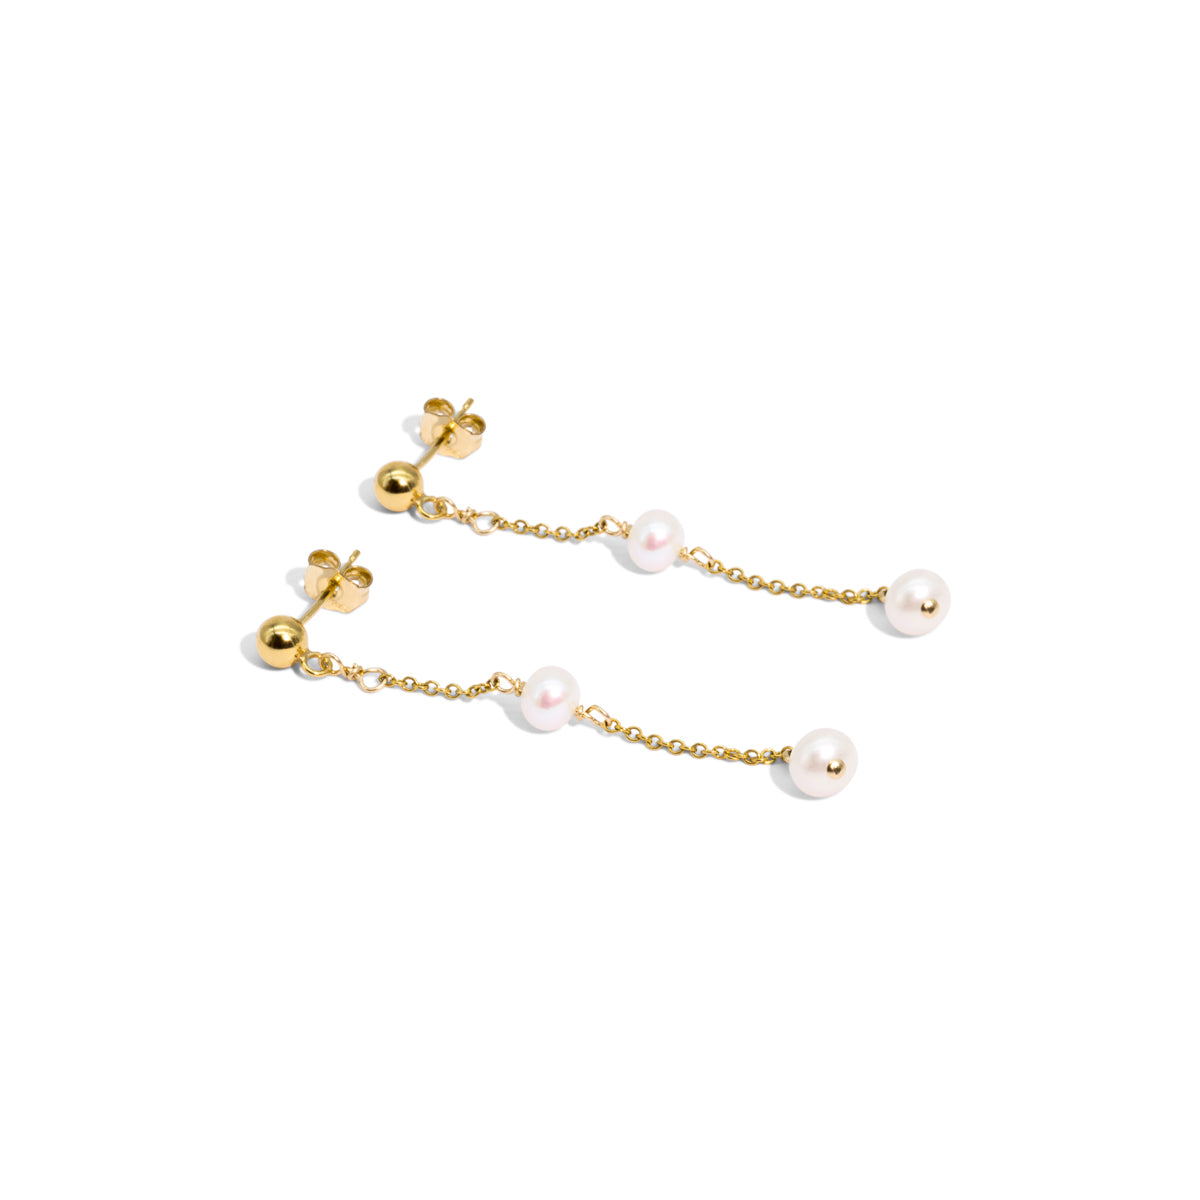 The Gold Mini Plato Drop Earrings